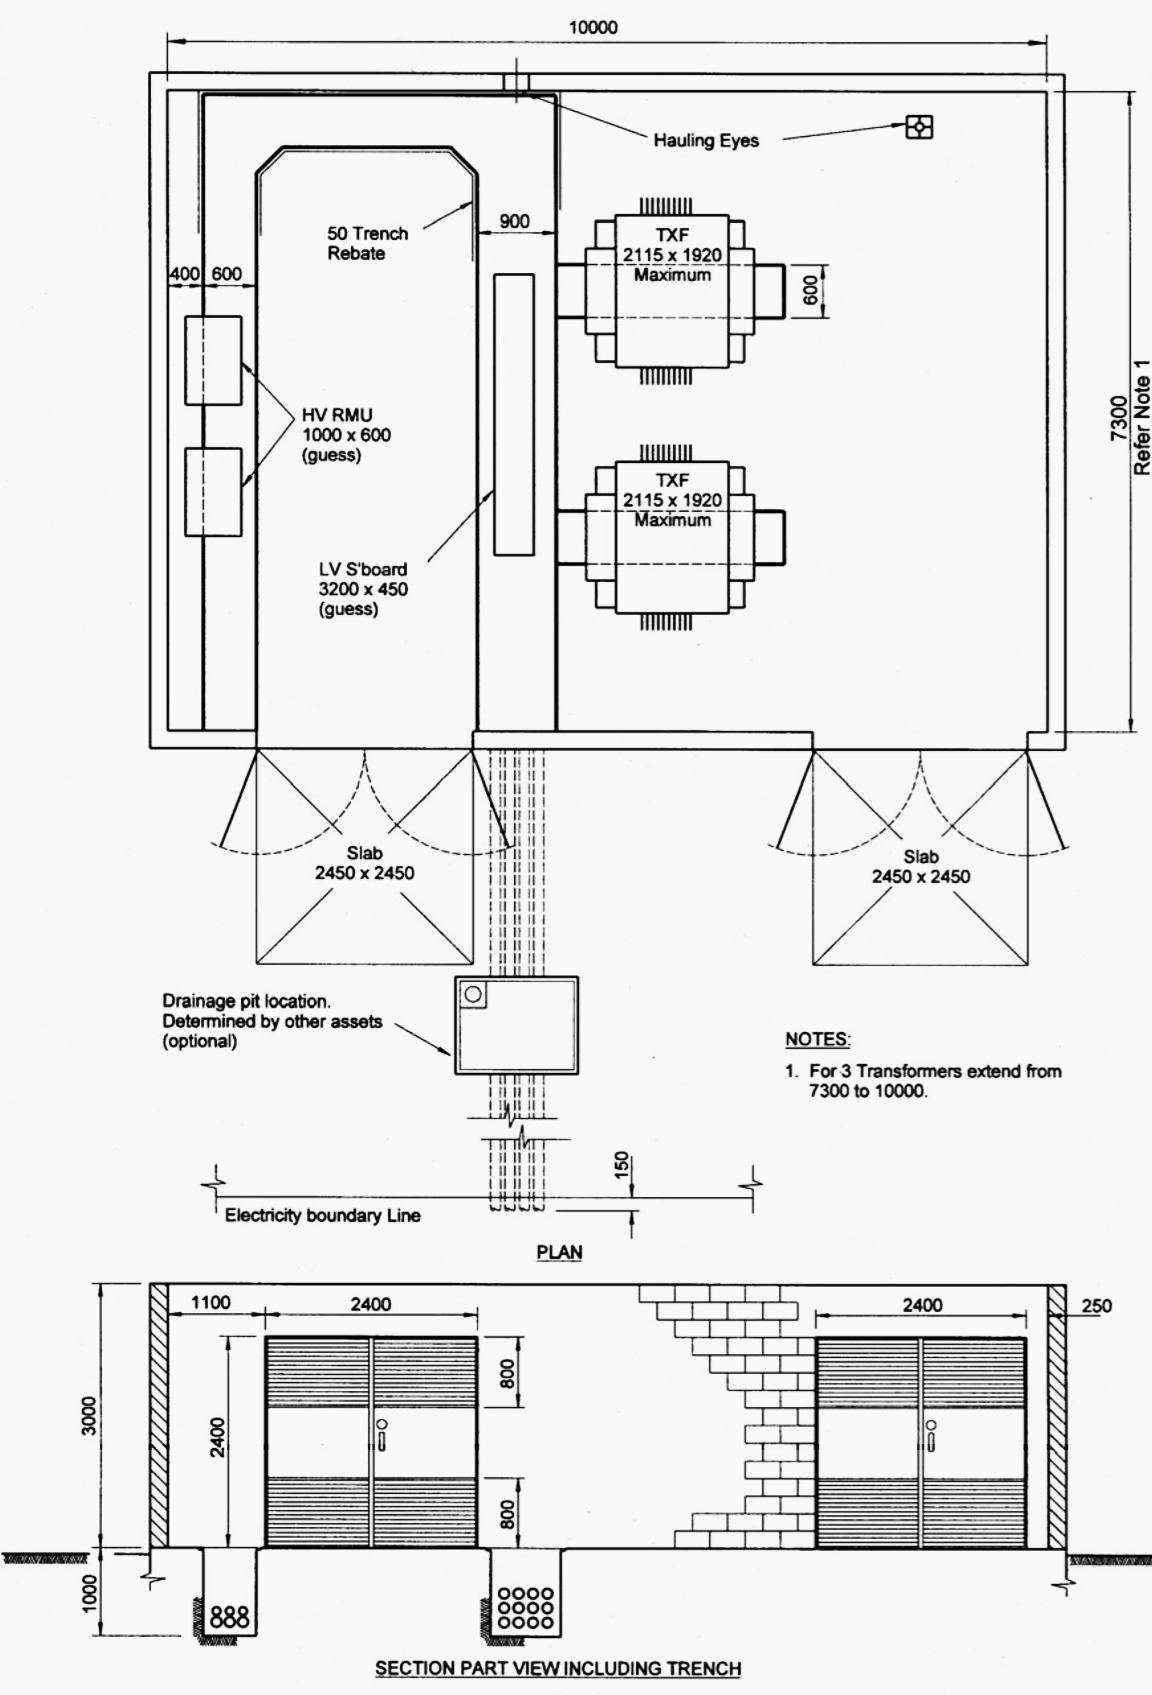 99a70bb358416076e5e32ffc7f5bacc9 indoor distribution substation layout with 2 transformers emf substation wiring diagrams at mifinder.co